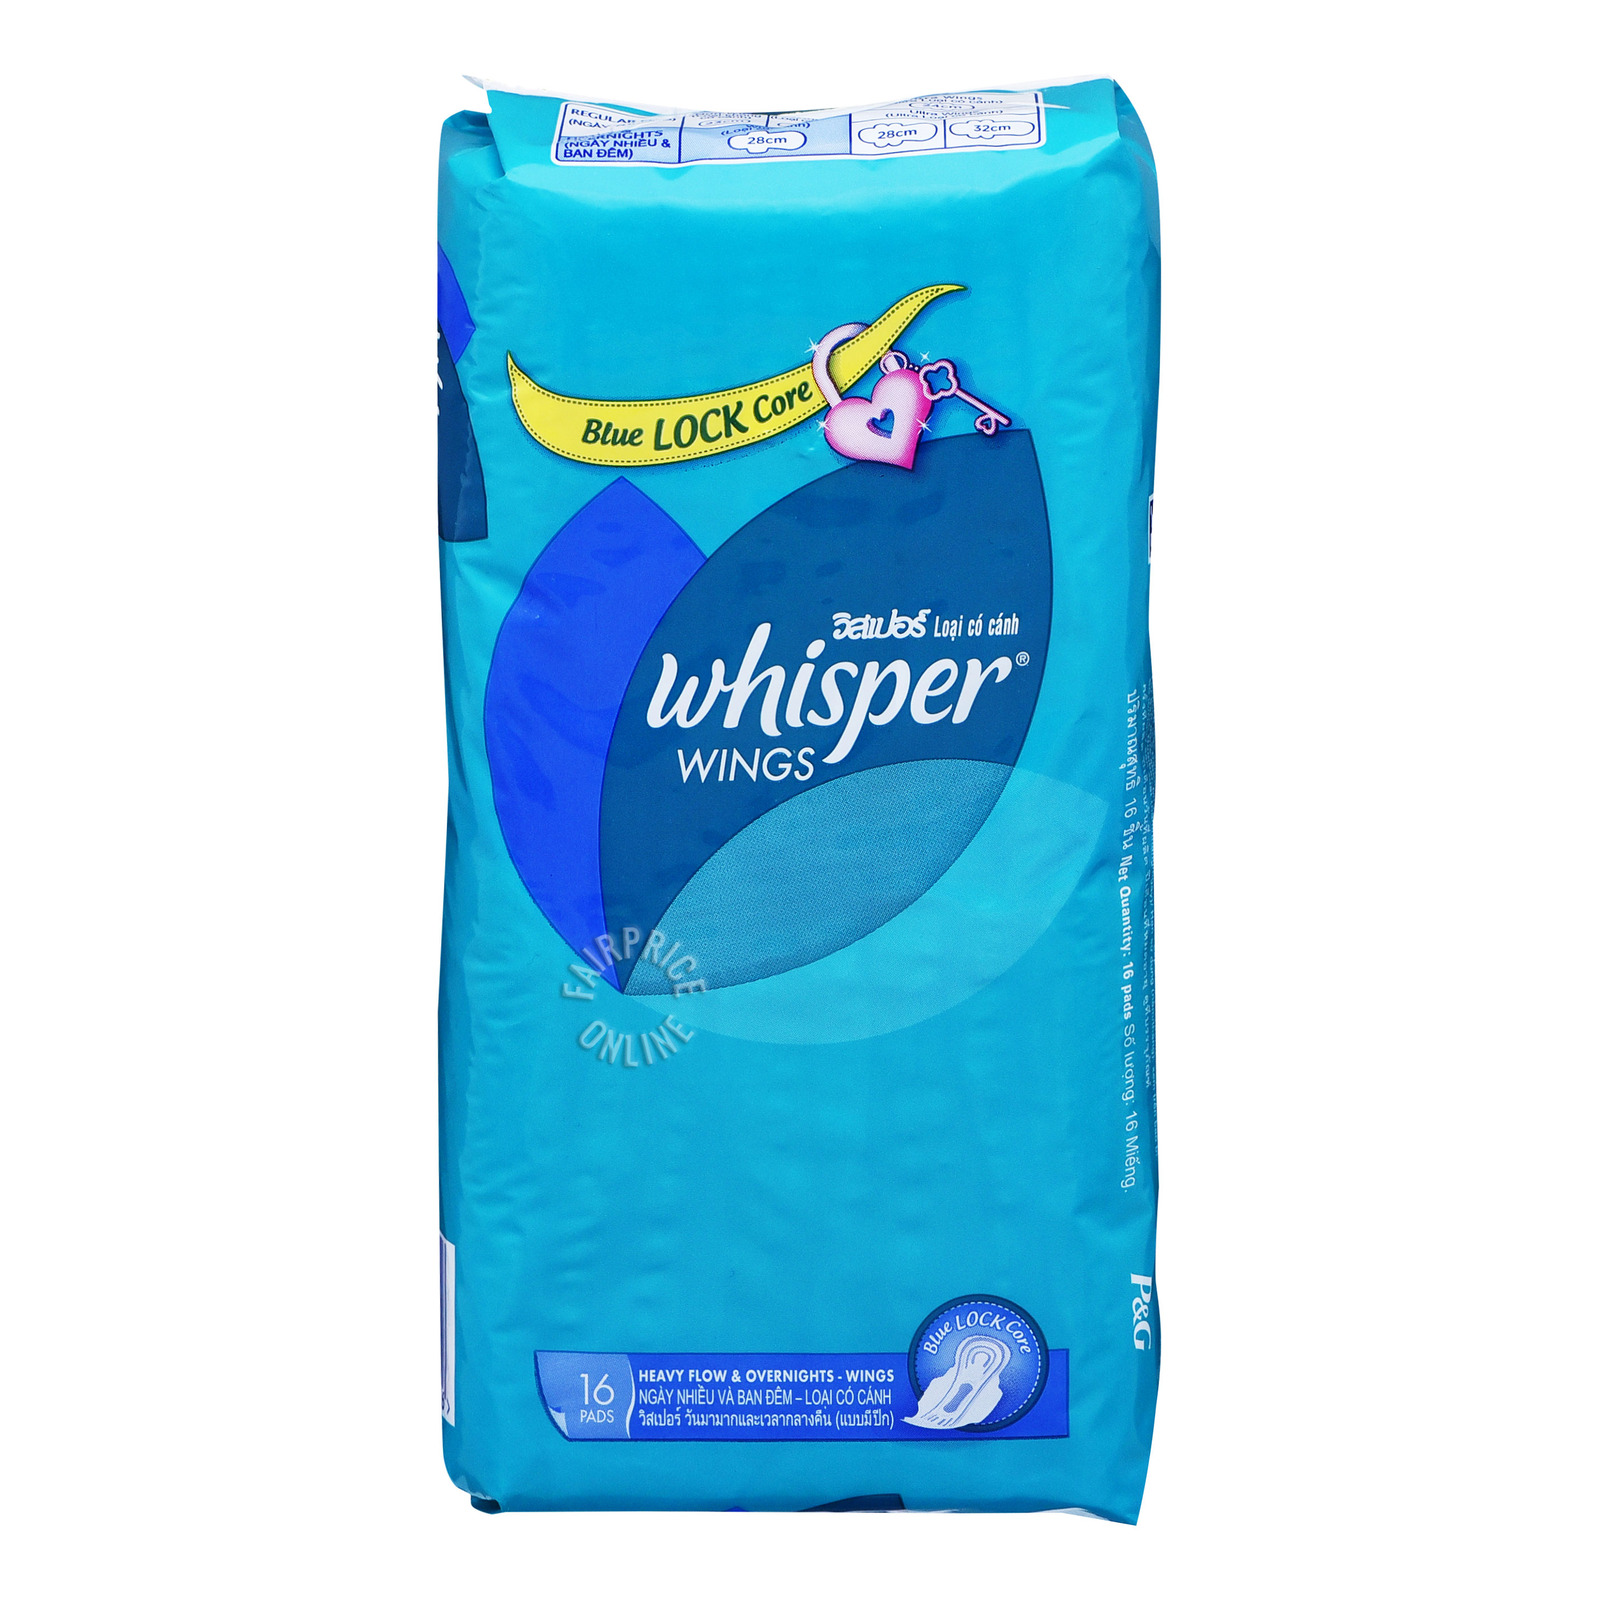 Whisper Wings Blue Lock Care Pads - Heavy Overnight (28cm)